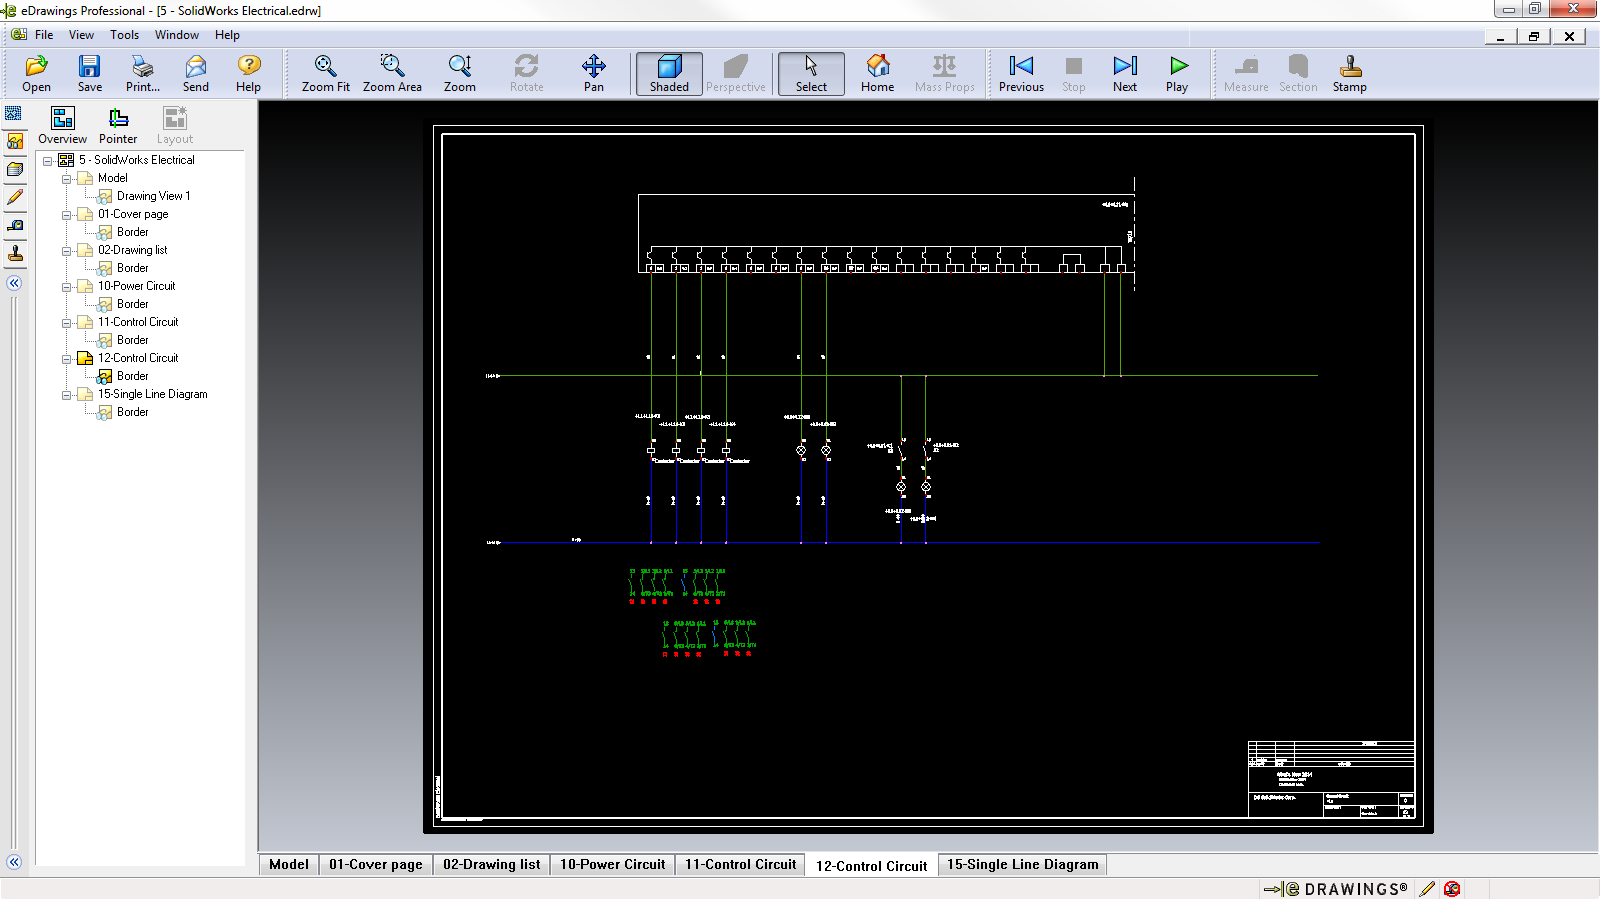 eDrawings 2014 now supports SOLIDWORKS Electrical Schematics.